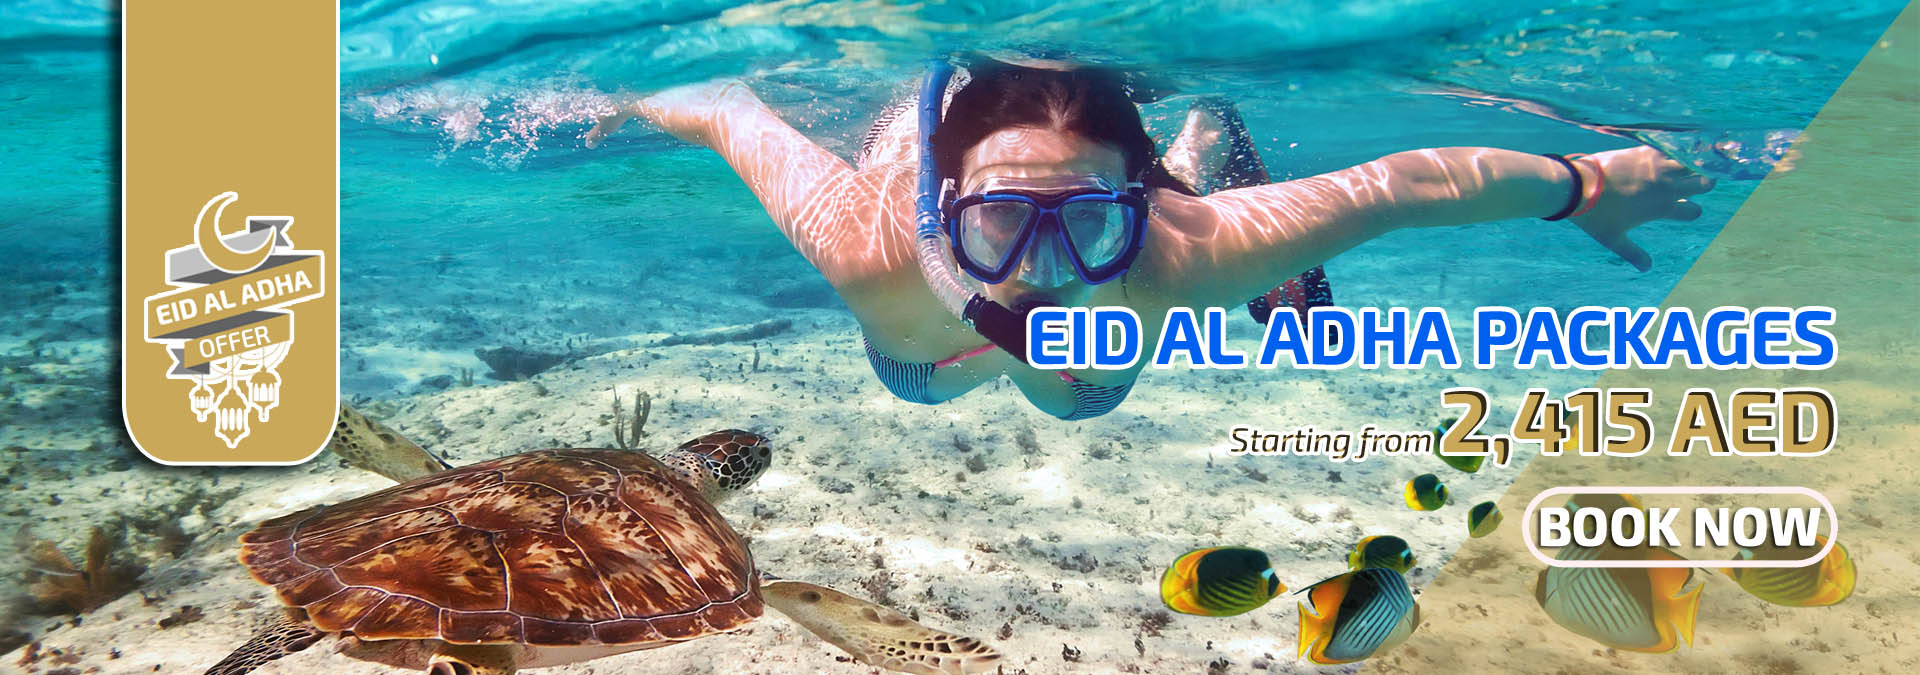 EID AL ADHA Packages